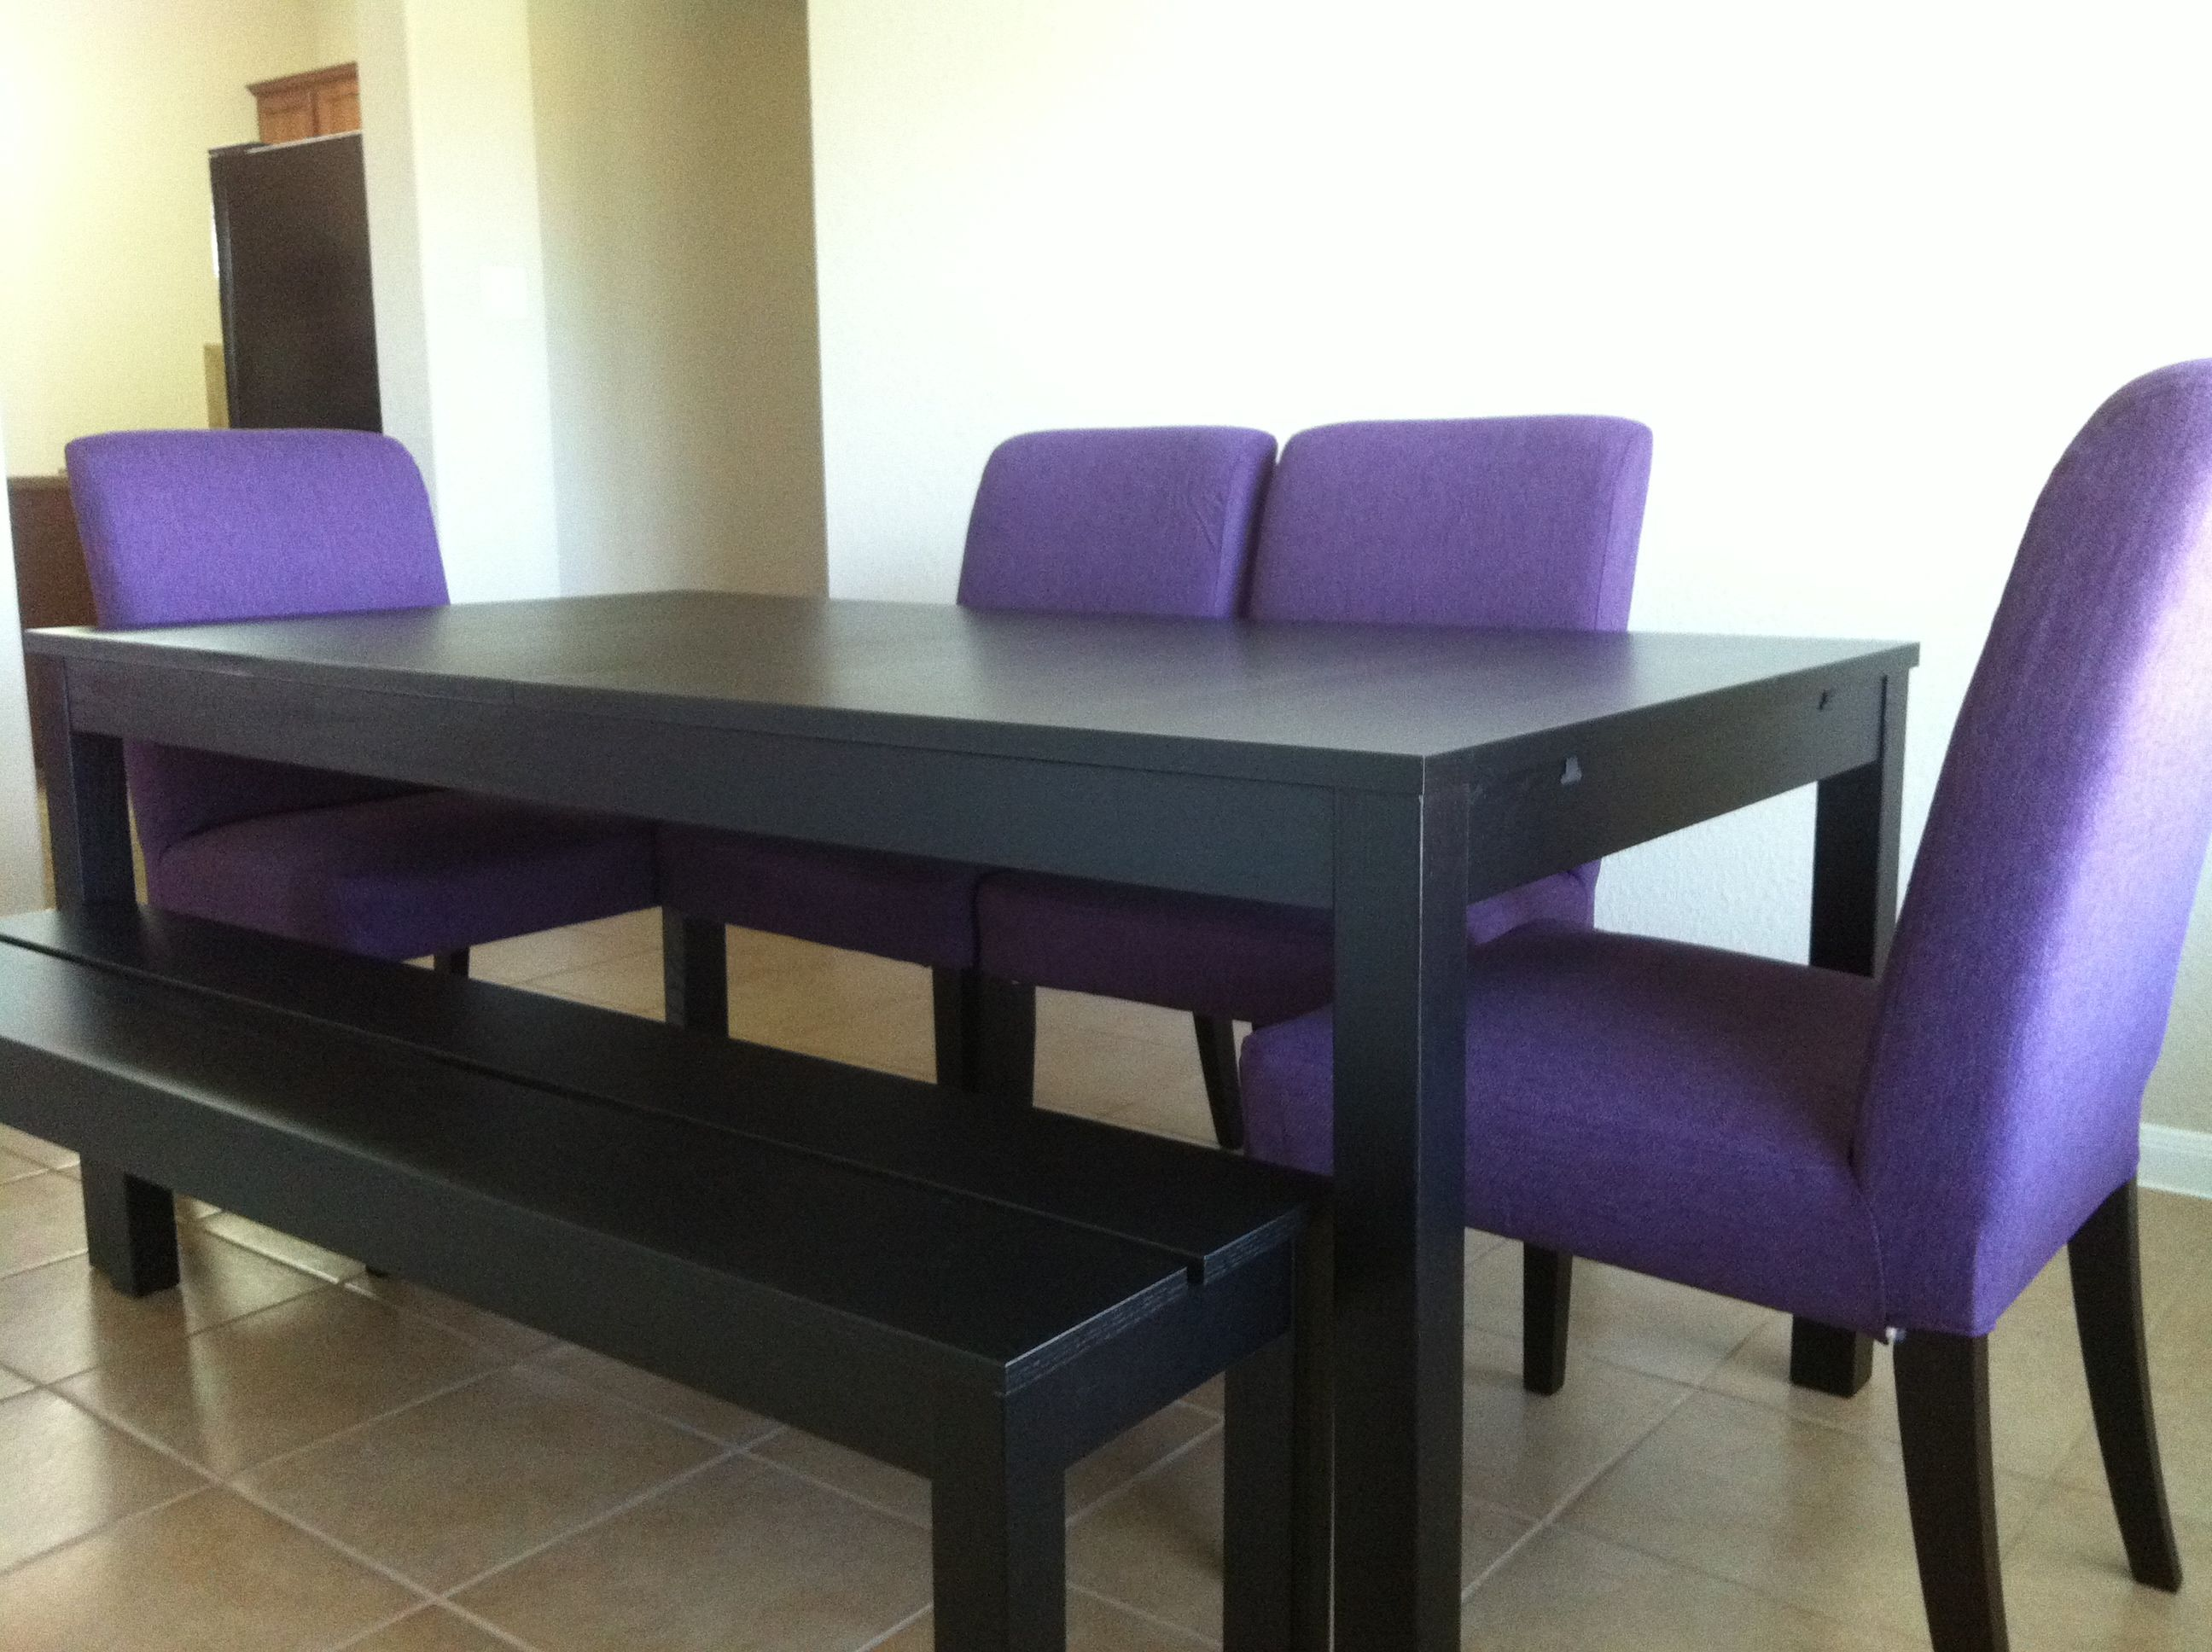 Ikea Esstische Bjursta Dining Set From Ikea Bjursta Table And Bench And